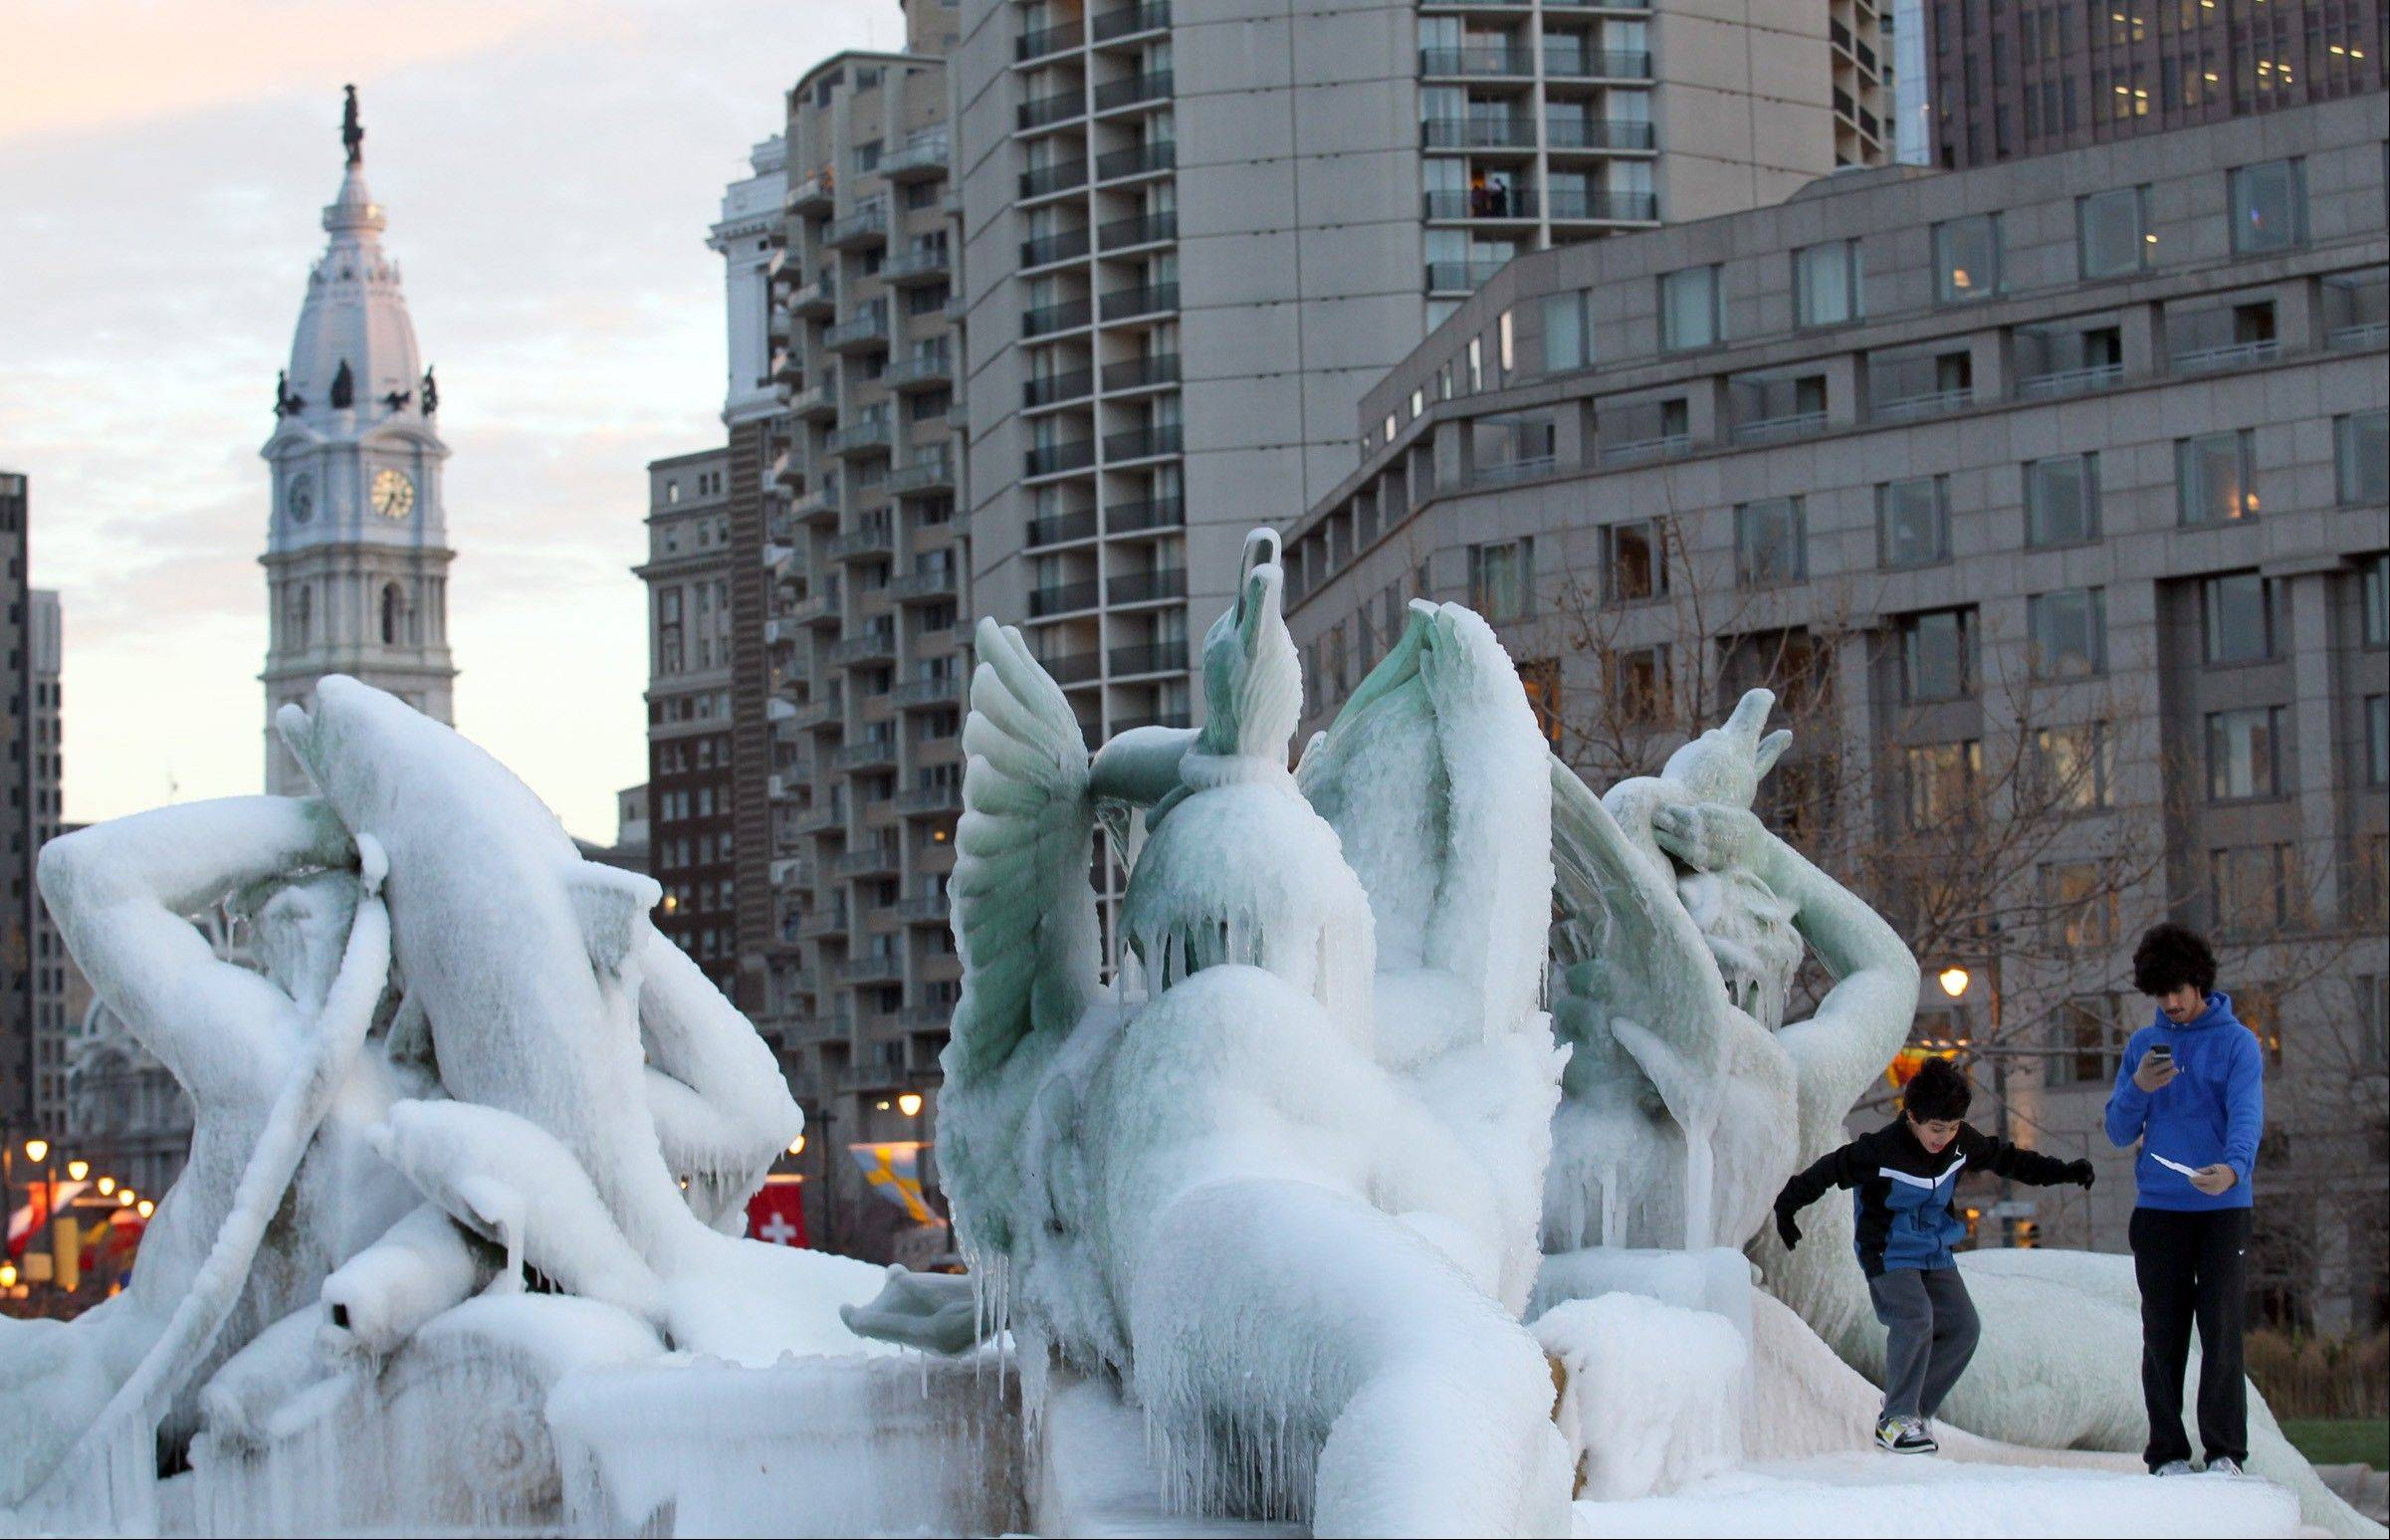 Faisal Almuohen, left, and Abduliz Almuohen play in the frozen Swann Memorial Fountain at Logan Circle, Monday, Nov. 25, 2013, in Philadelphia.